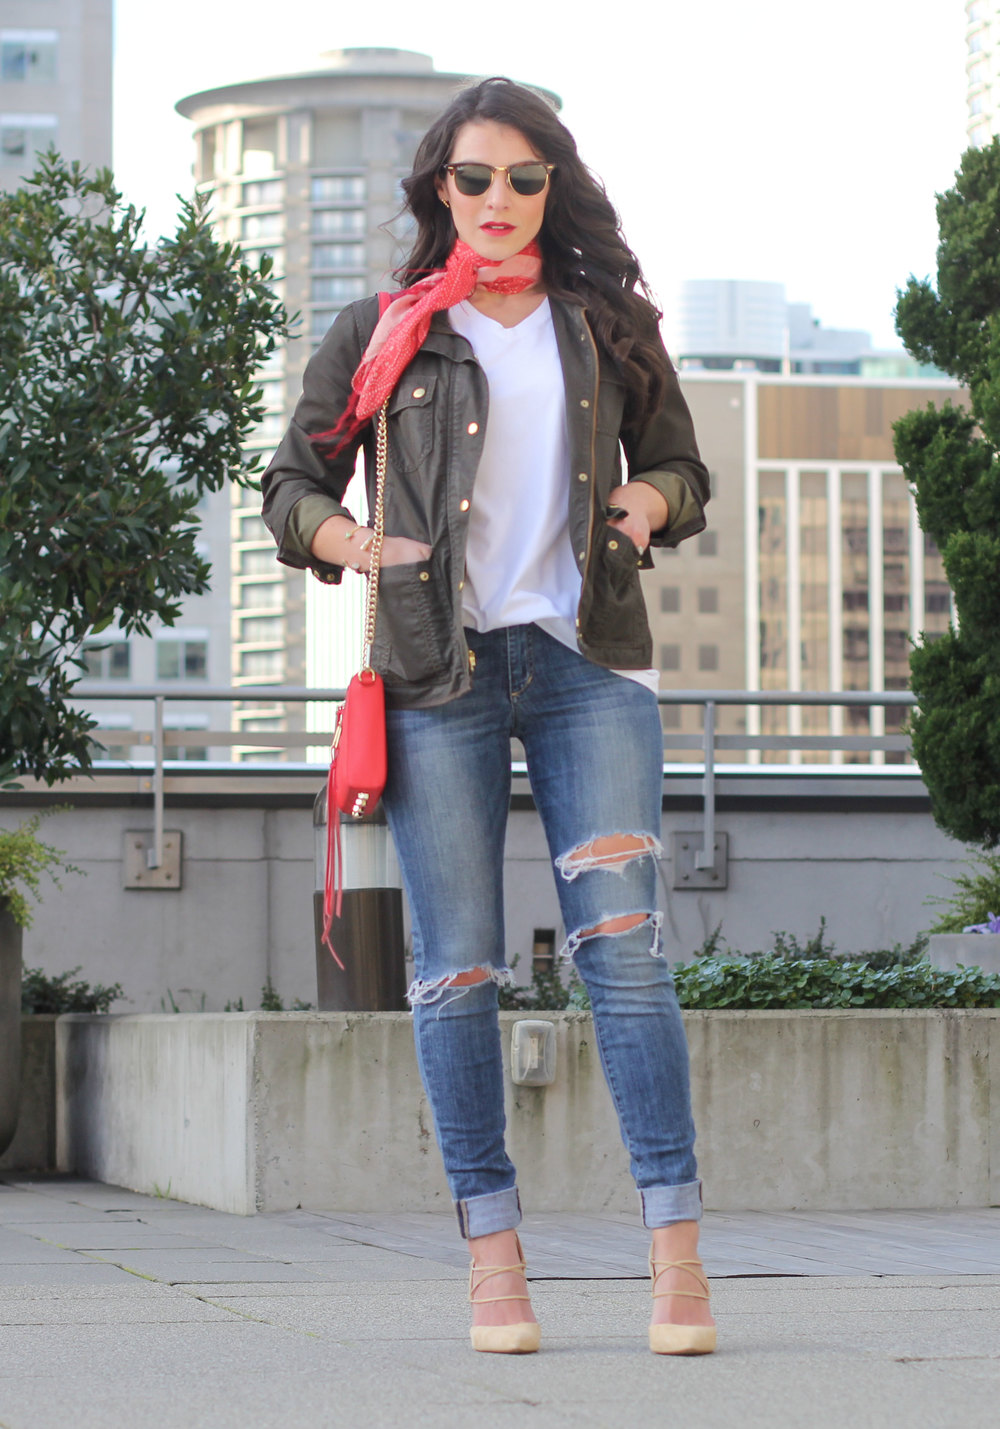 Shop His Closet: How to wear a boyfriend tee, Red Scarf, J.Crew Downtown Field Jacket, Sam Edelman 'Dayna' Pumps, Rebecca Minkoff Avery Crossbody